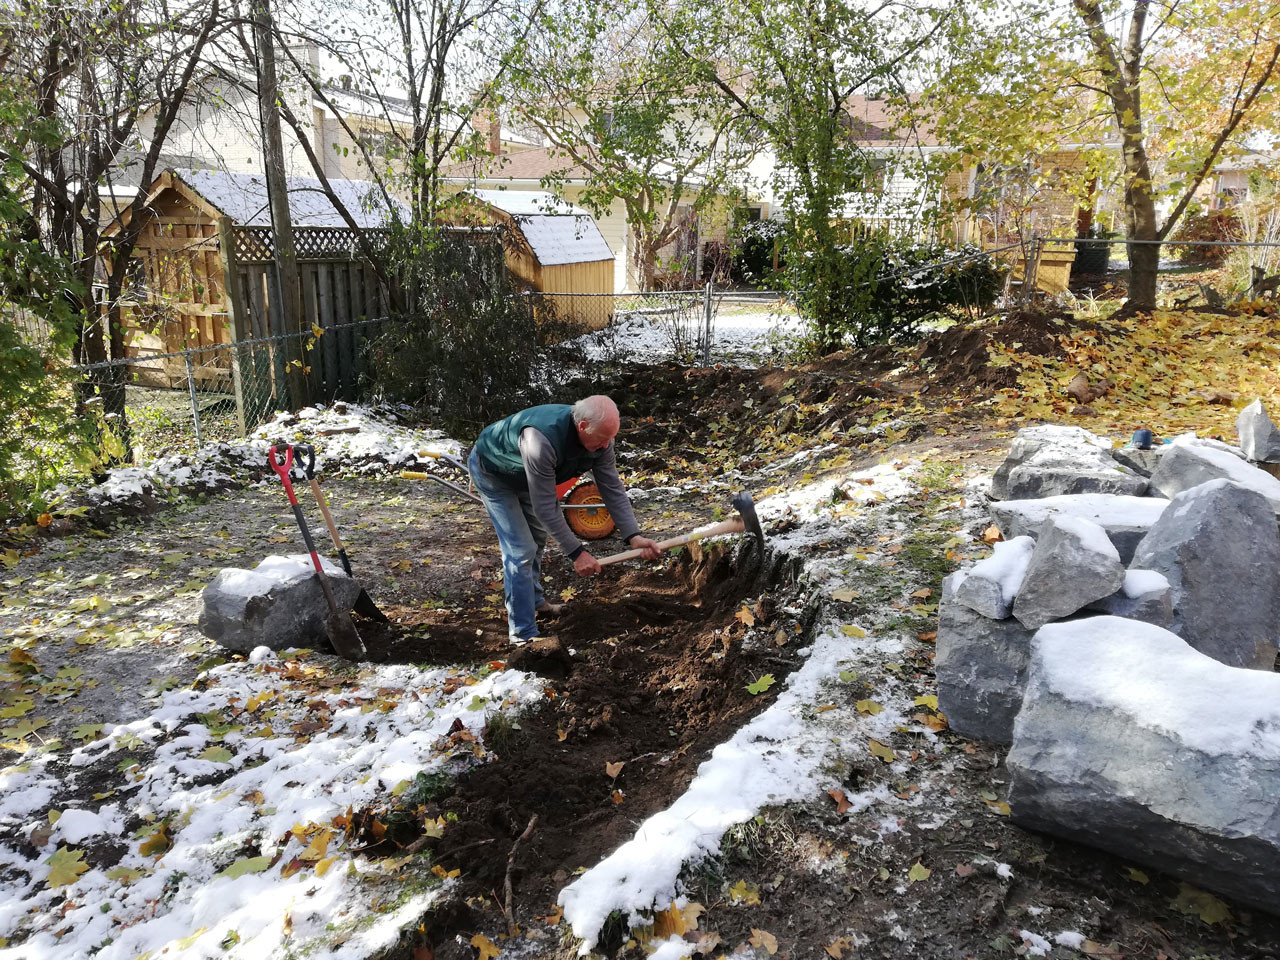 Martin uses a pickaxe to prepare level area for armour stone retaining wall.